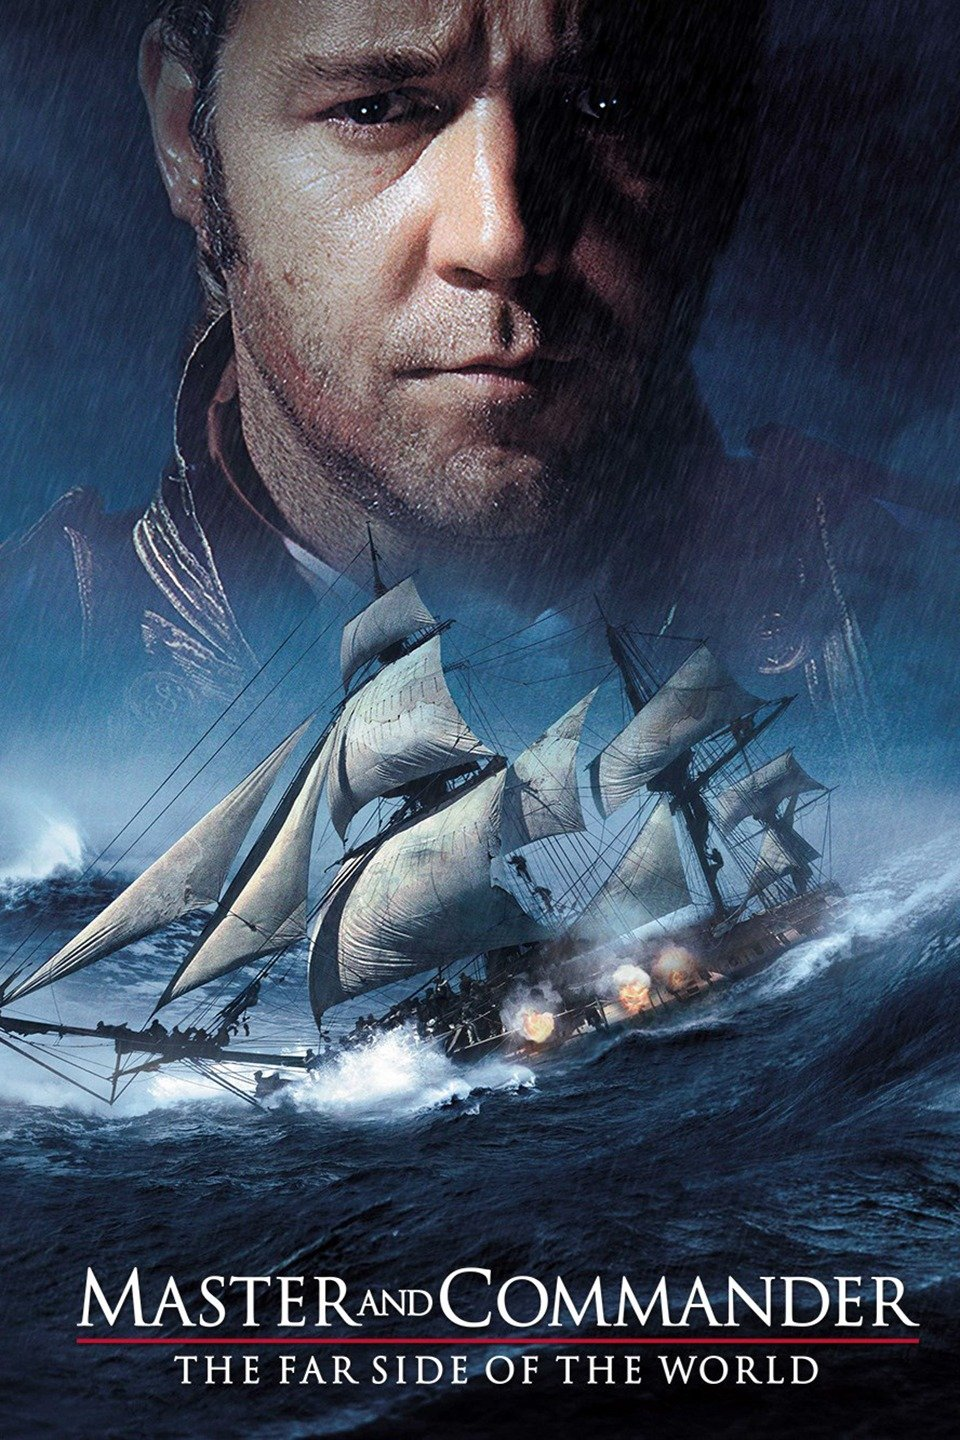 Master and Commander: The Far Side of the World (2003) - Directed by: Peter WeirStarring: Russell Crowe, Paul Bettany, Billy BoydRated: PG-13 for Intense Battle Sequences, Related Images, and Brief LanguageRunning Time: 2h 18mTMM Score: 5 StarsSTRENGTHS: Cinematography, Writing, Direction, PerformancesWEAKNESSES: -